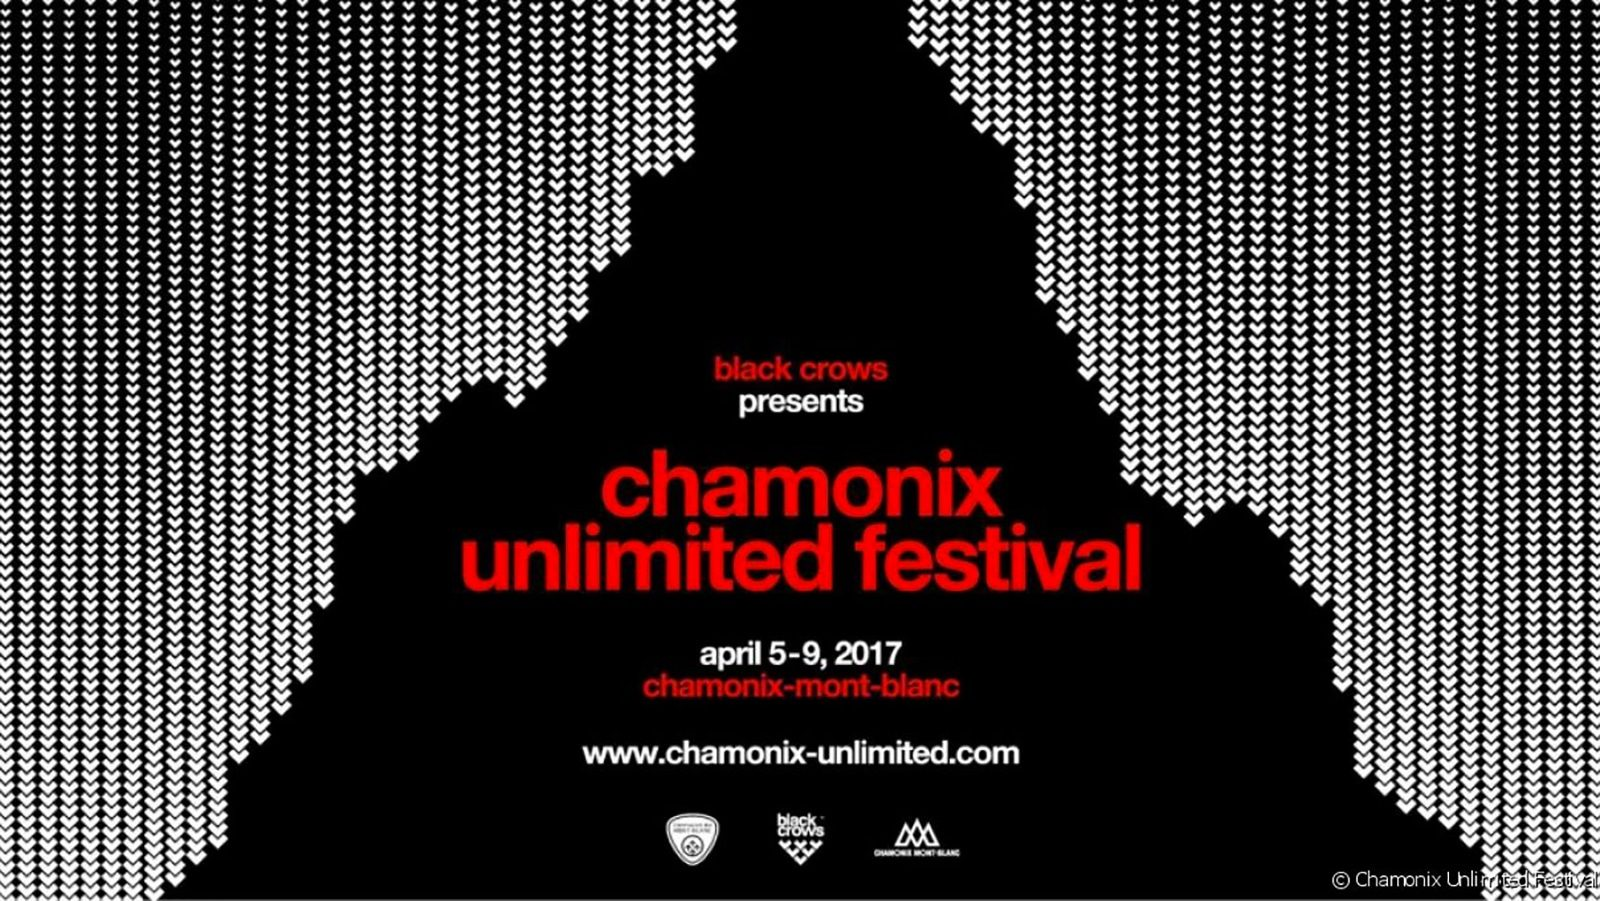 Chamonix unlimited festival 2017 en avril